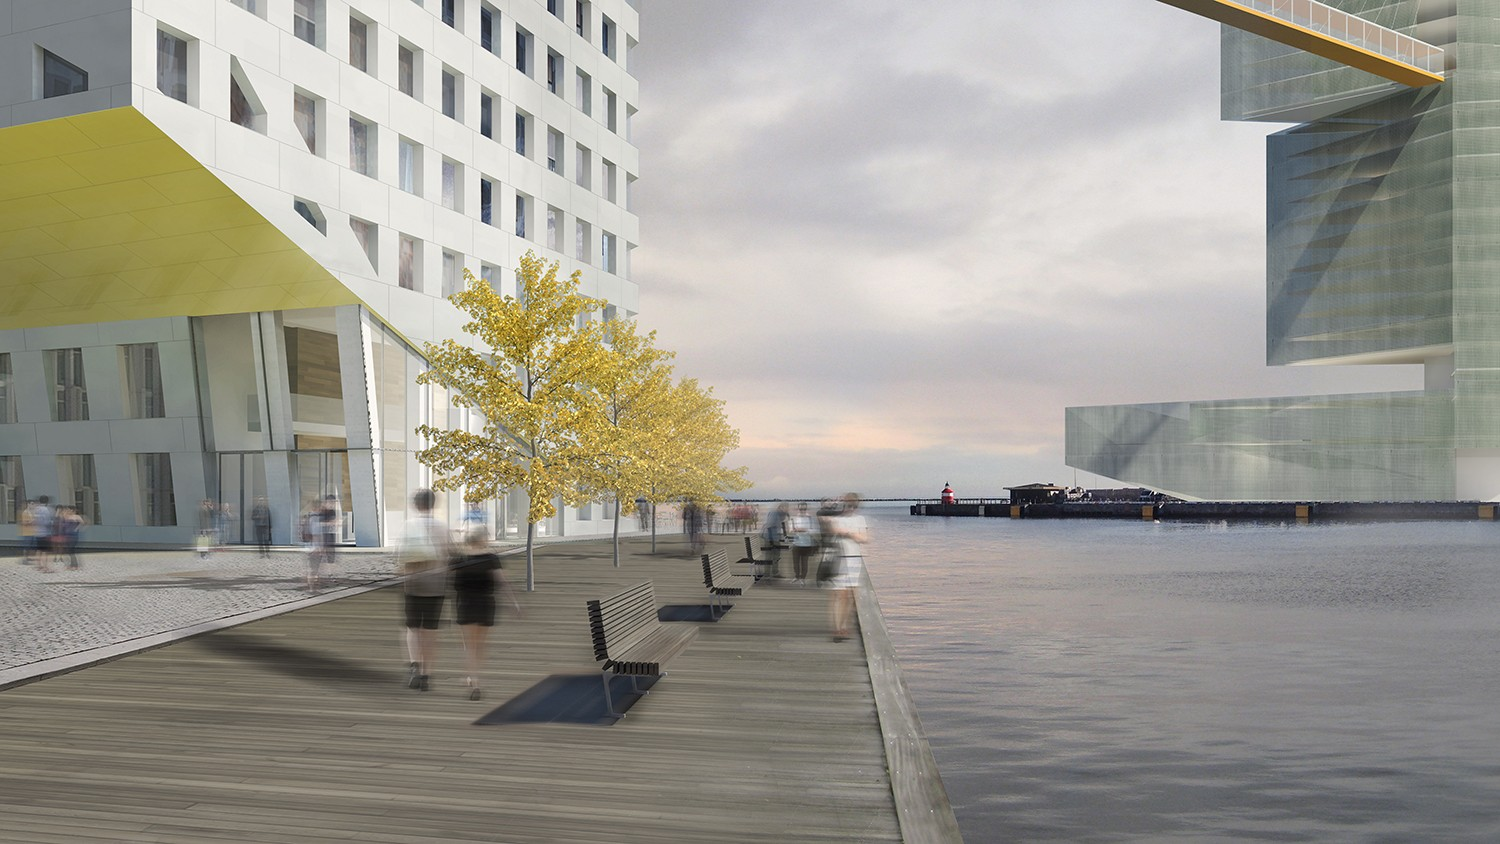 https://s3.us-east-2.amazonaws.com/steven-holl/uploads/projects/project-images/StevenHollArchitects_LM_CopenhagenGate_ViewB_WH.jpg